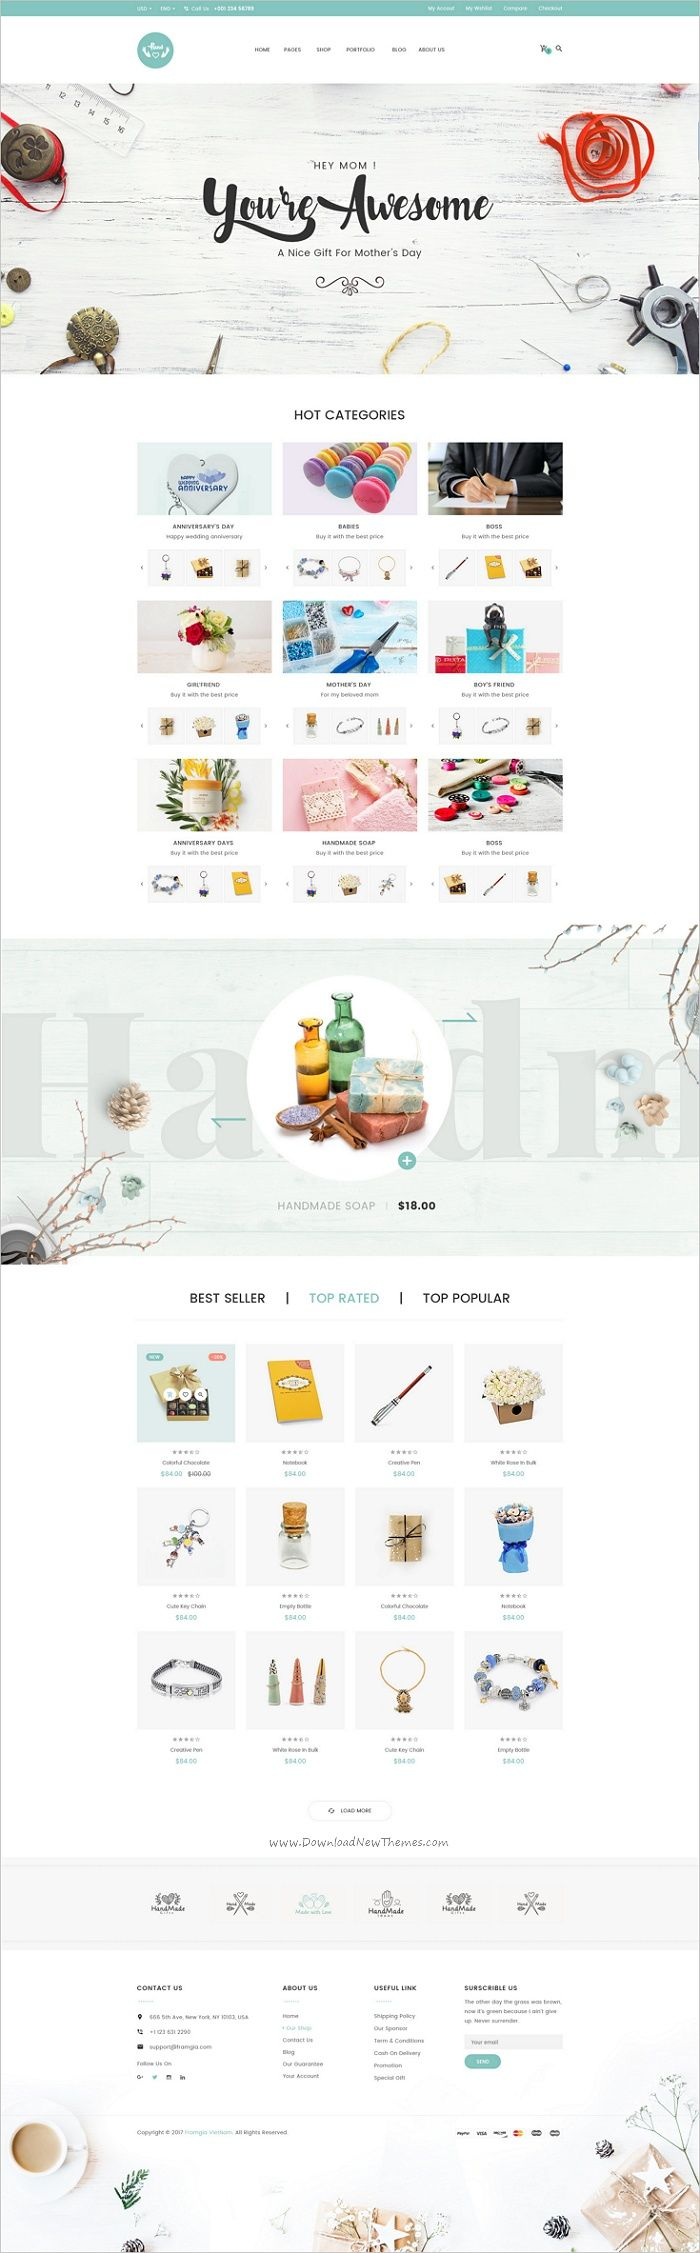 HandLove is a modern #PSD #eCommerce template suitable for handmade #shop, gift shop, fashion shop websites download now➩ https://themeforest.net/item/handlove-ecommece-psd-template/19194085?ref=Datasata